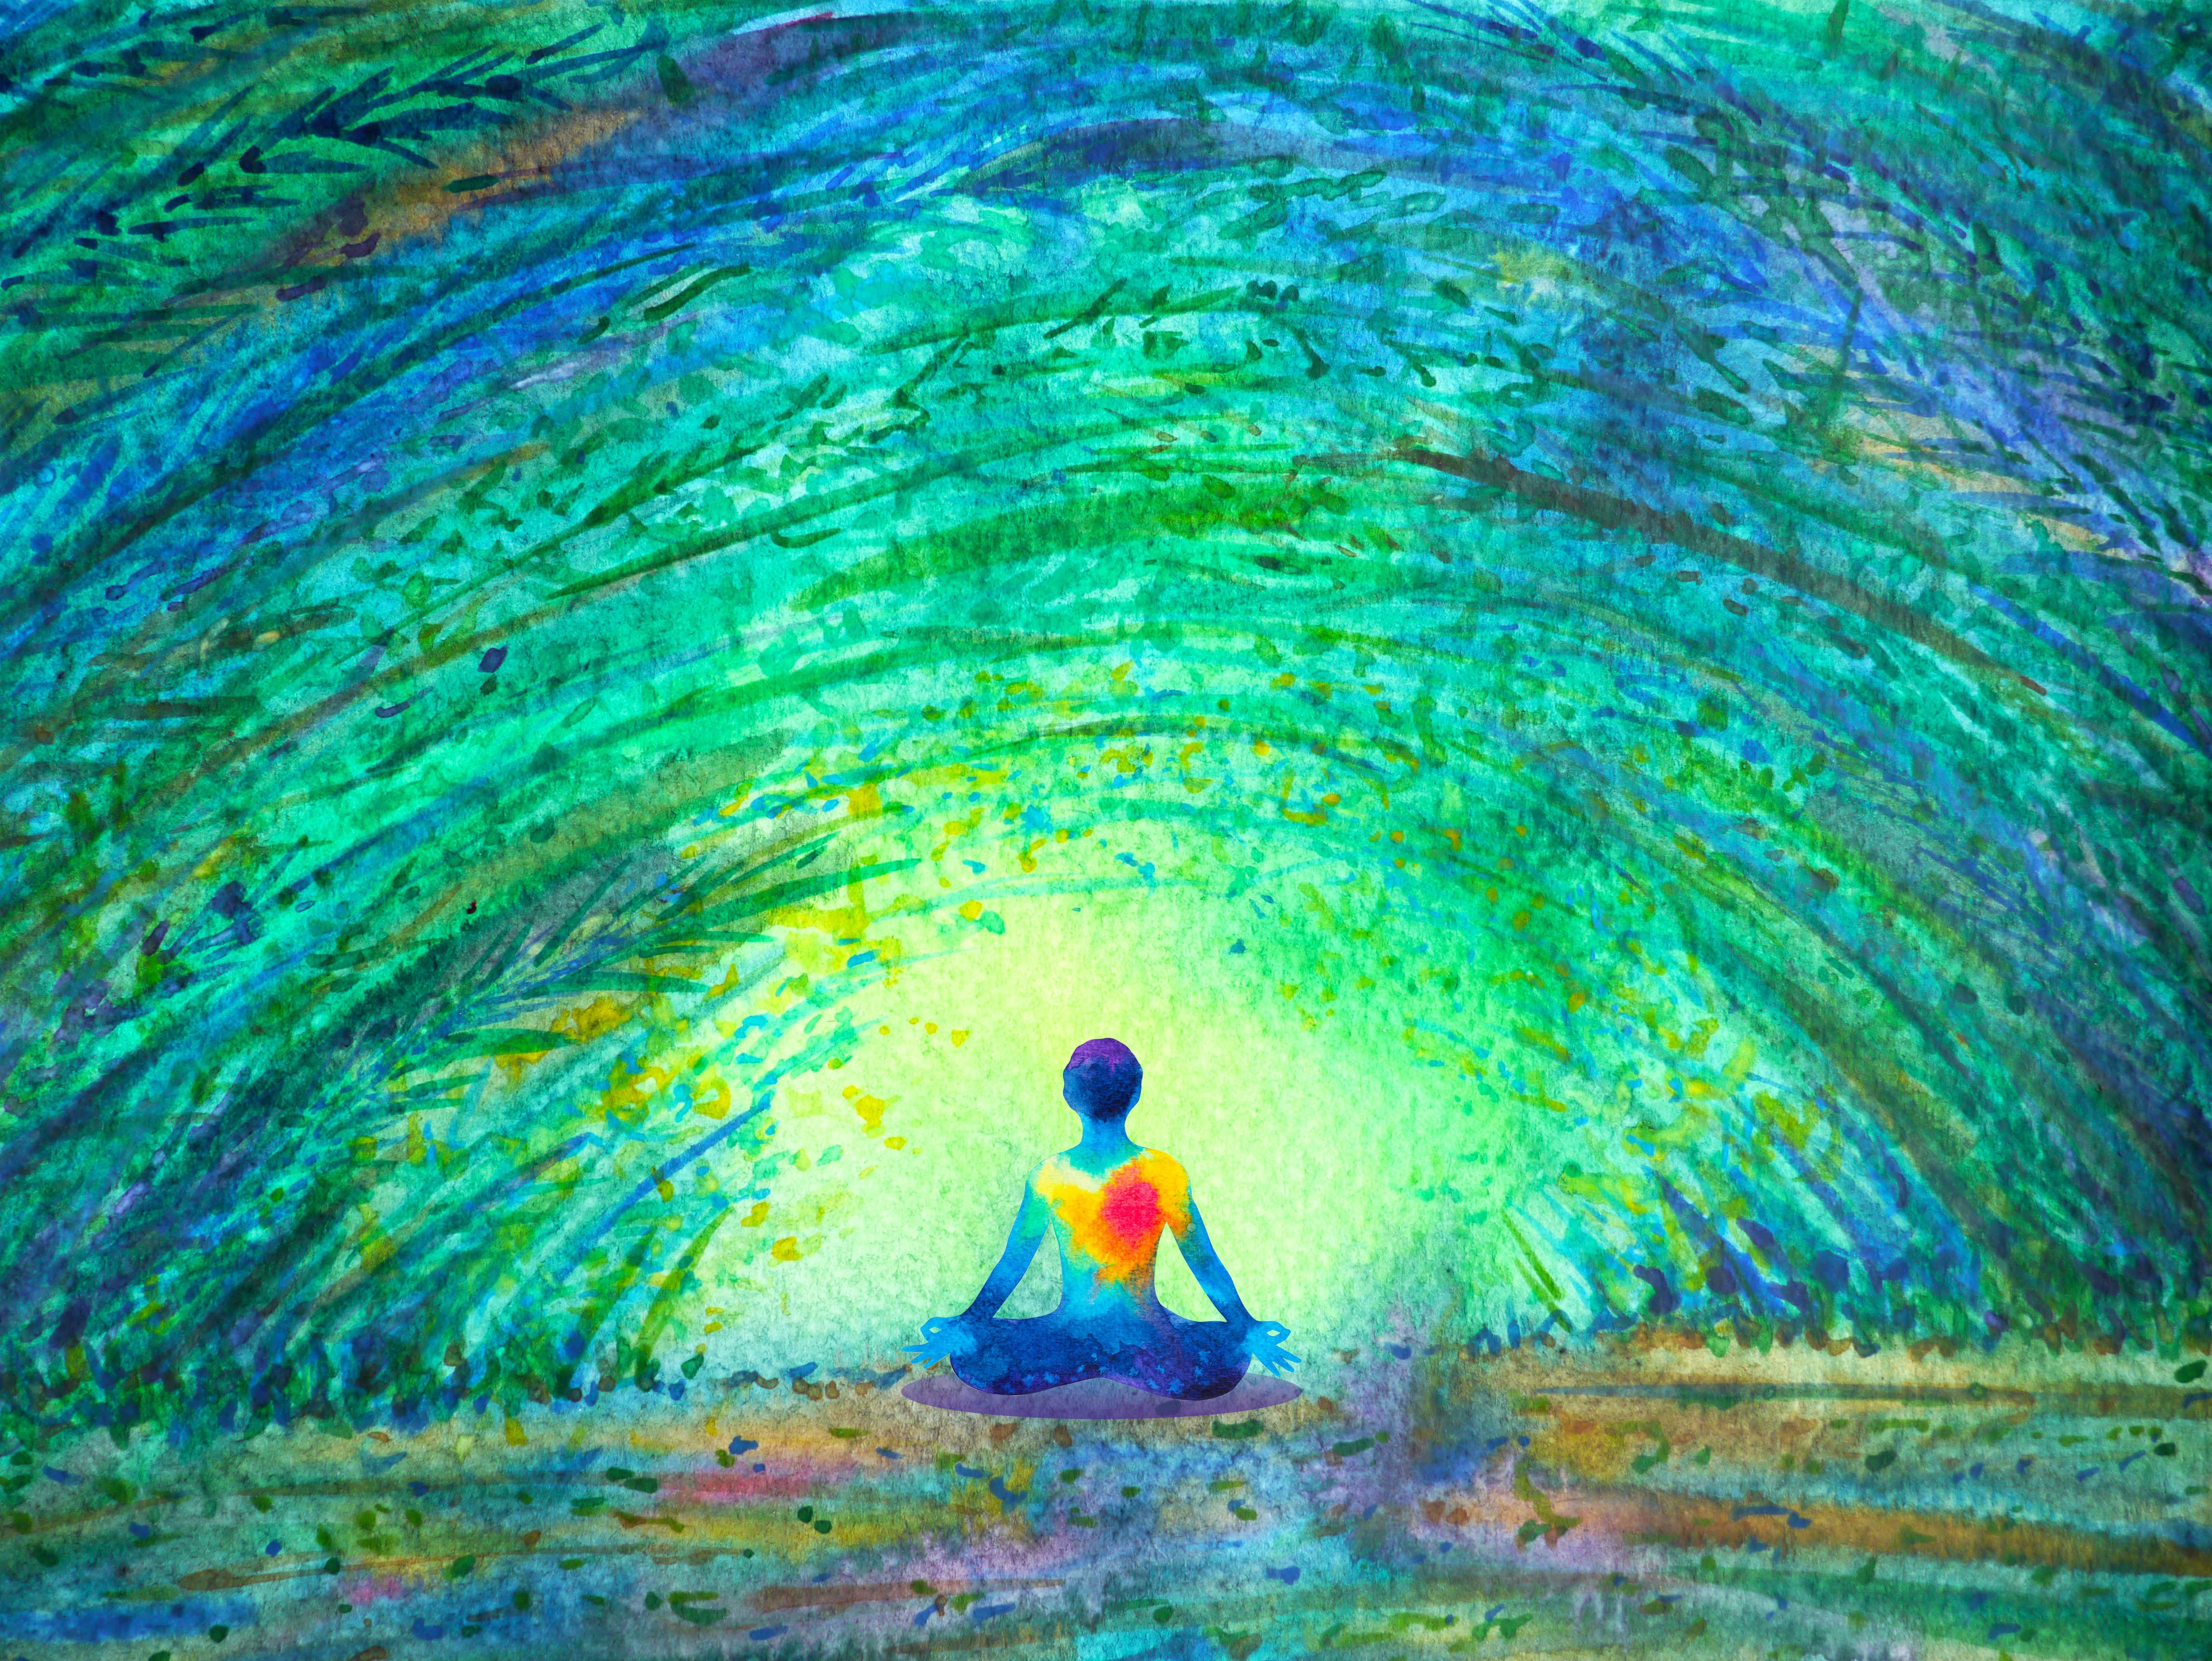 A colorful abstract illustration of a figure sitting down surrounded by bright green and blue light.